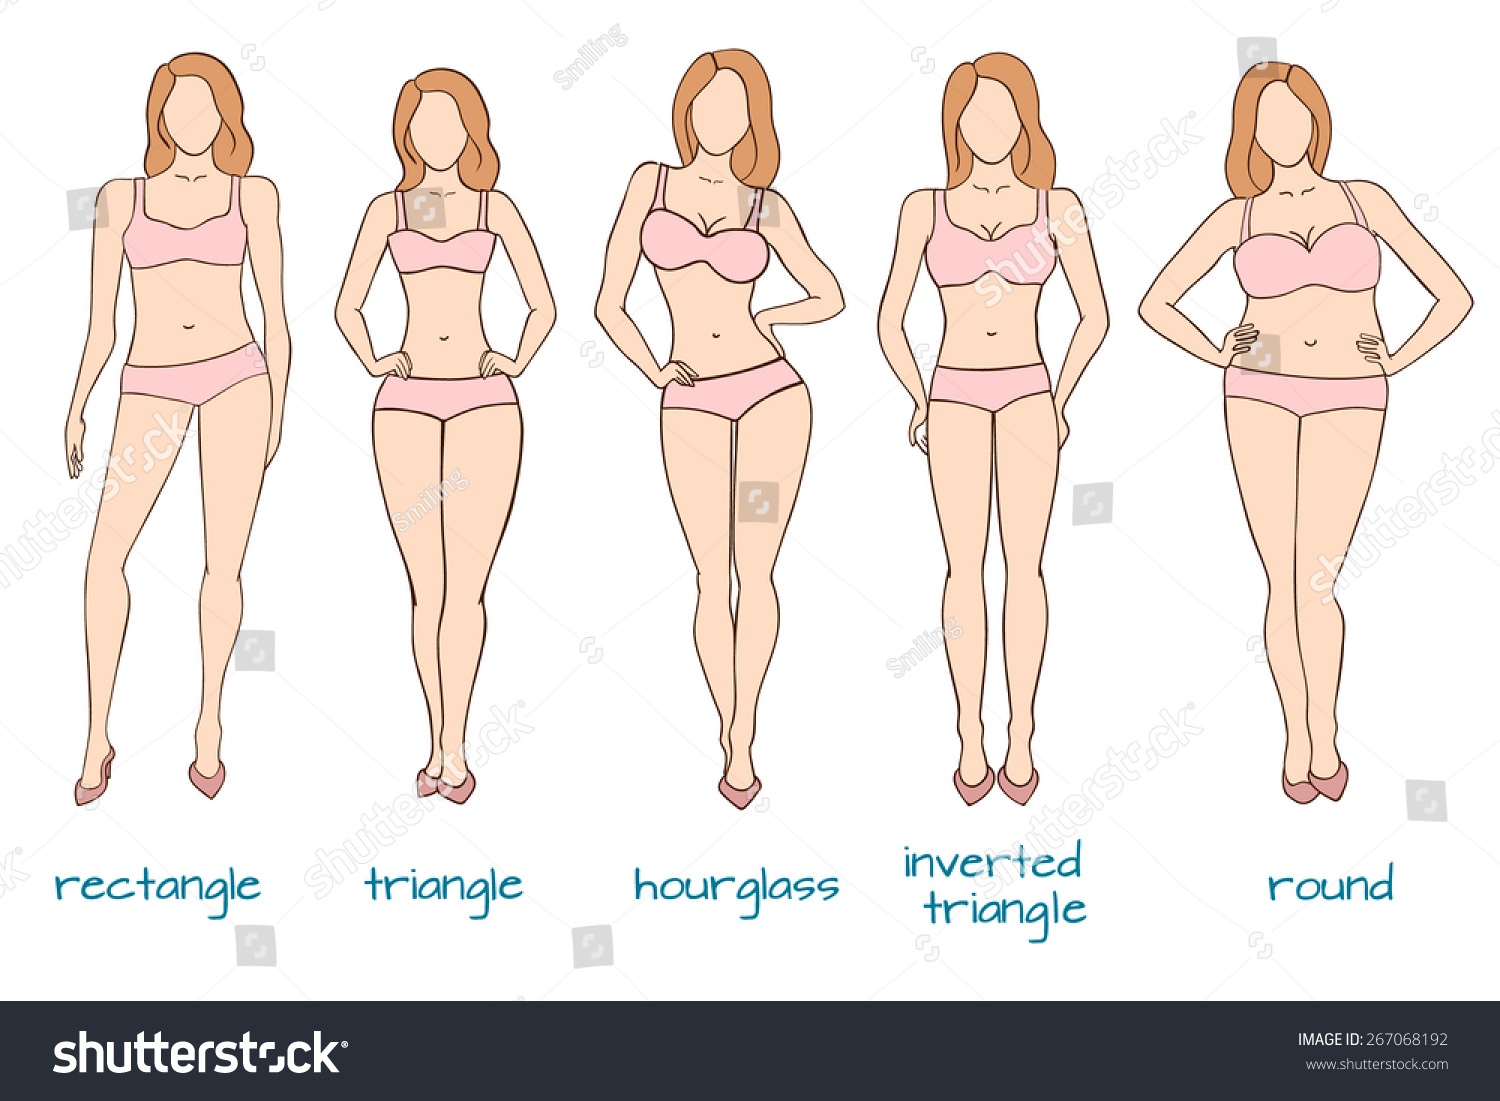 Women's Ideal Body Types Throughout